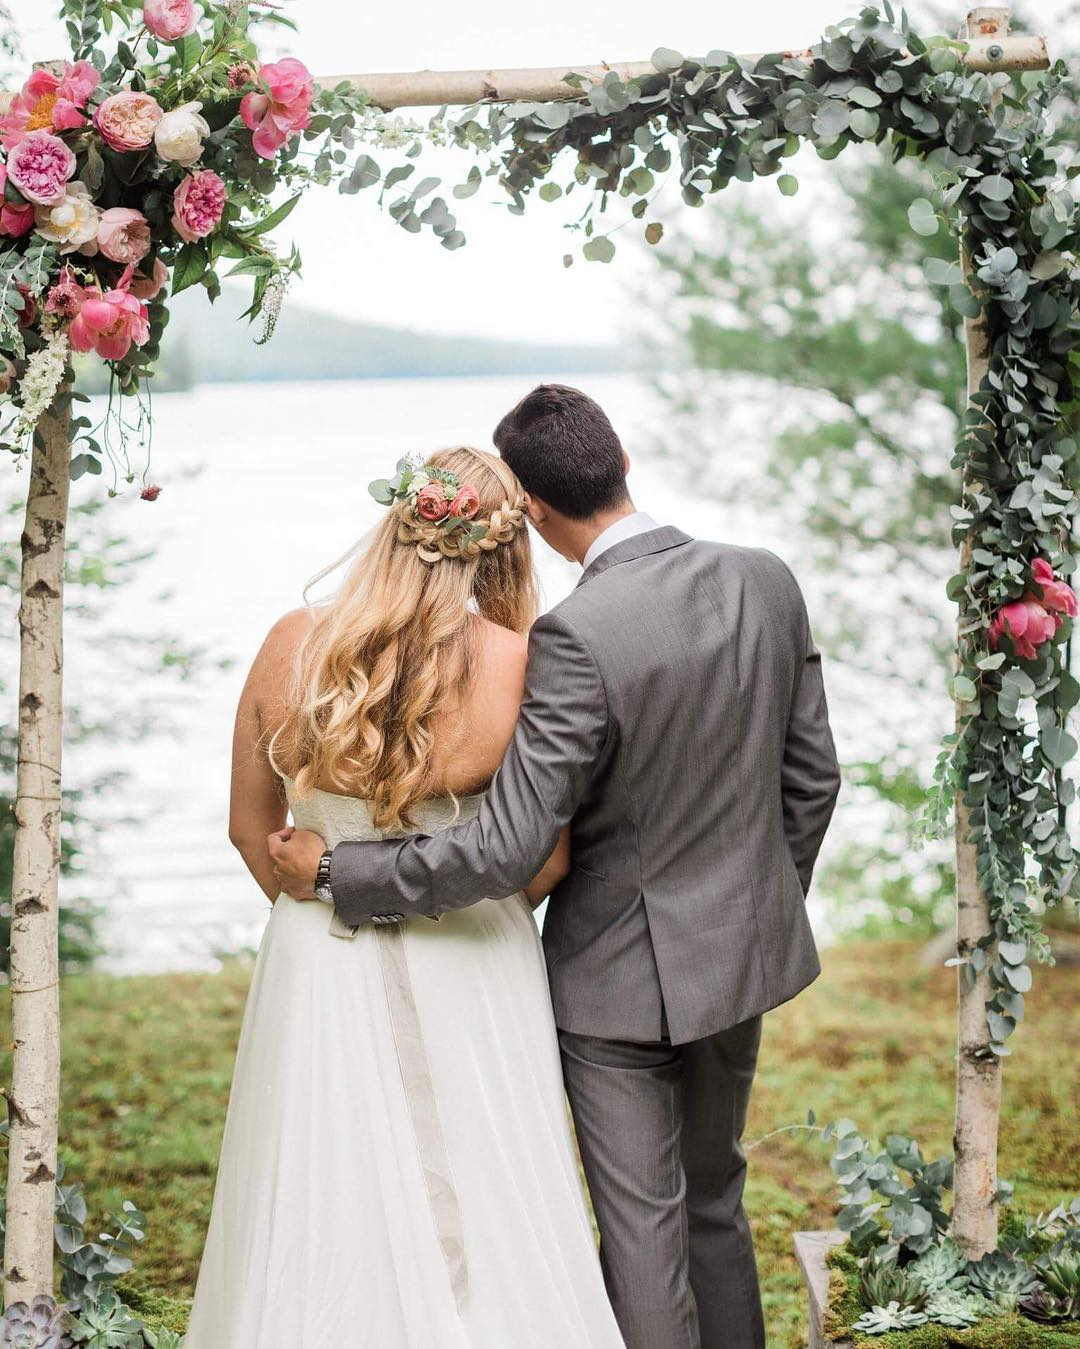 {love} photo | @jharperphoto  Still swooning over Nate & Michelle's wedding Thursday on Squam Lake. It was perfection❤